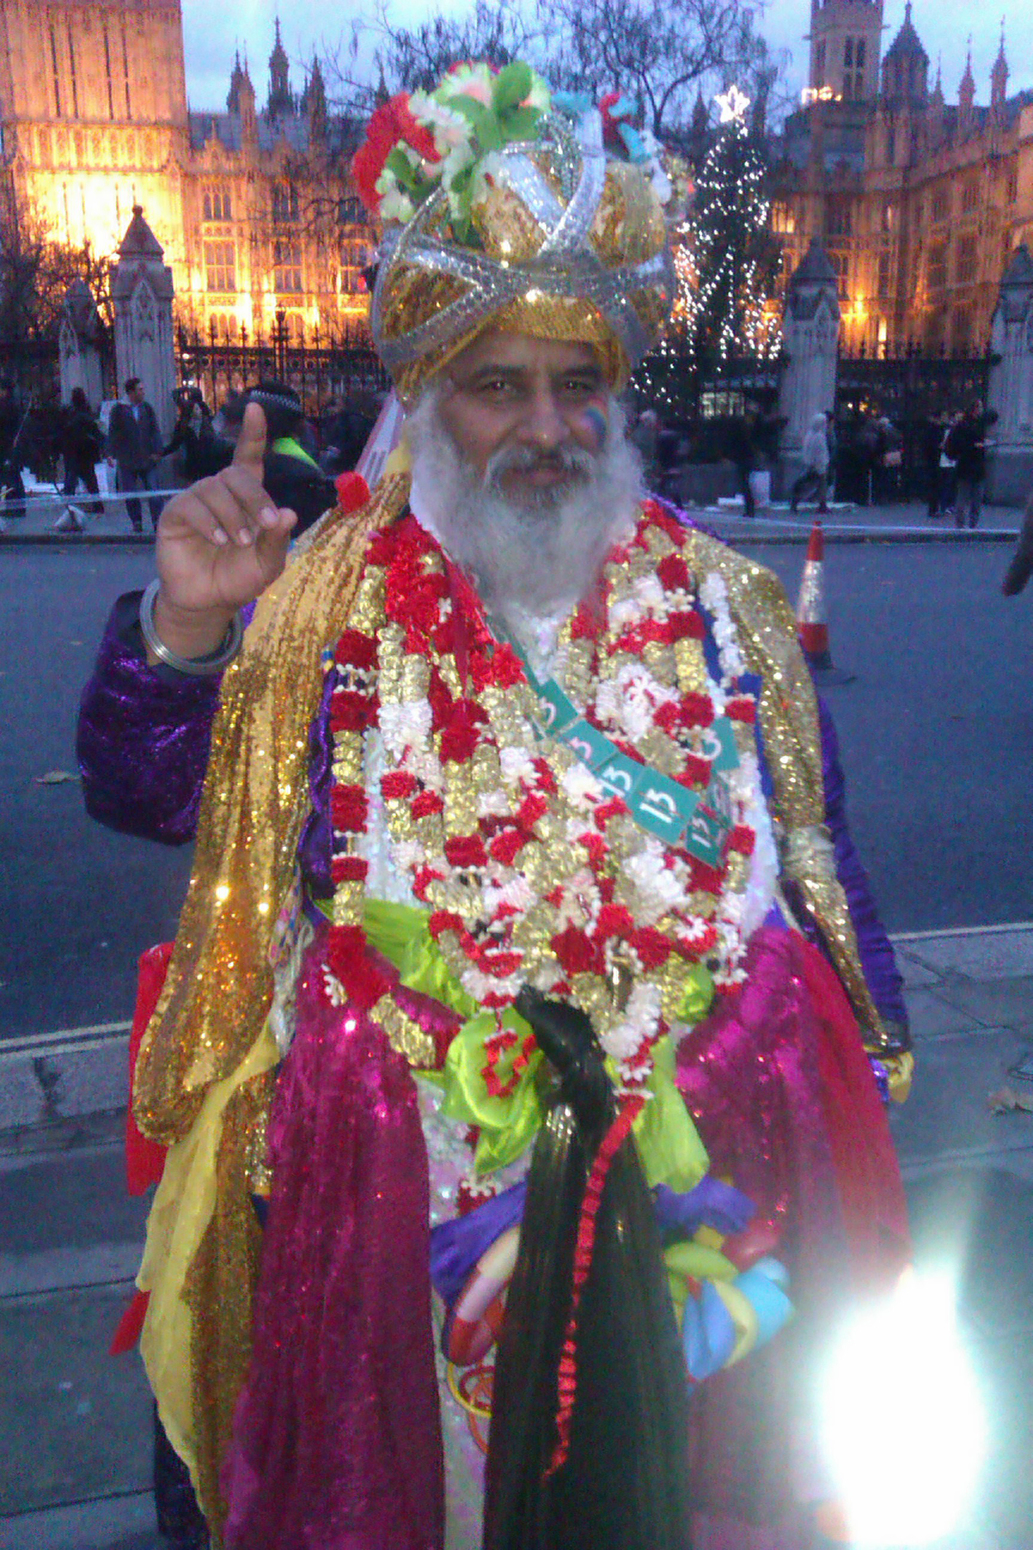 Share International January / February 2016 images, Maitreya disguised as an Indian holy man in London 29 November 2015 during climate march